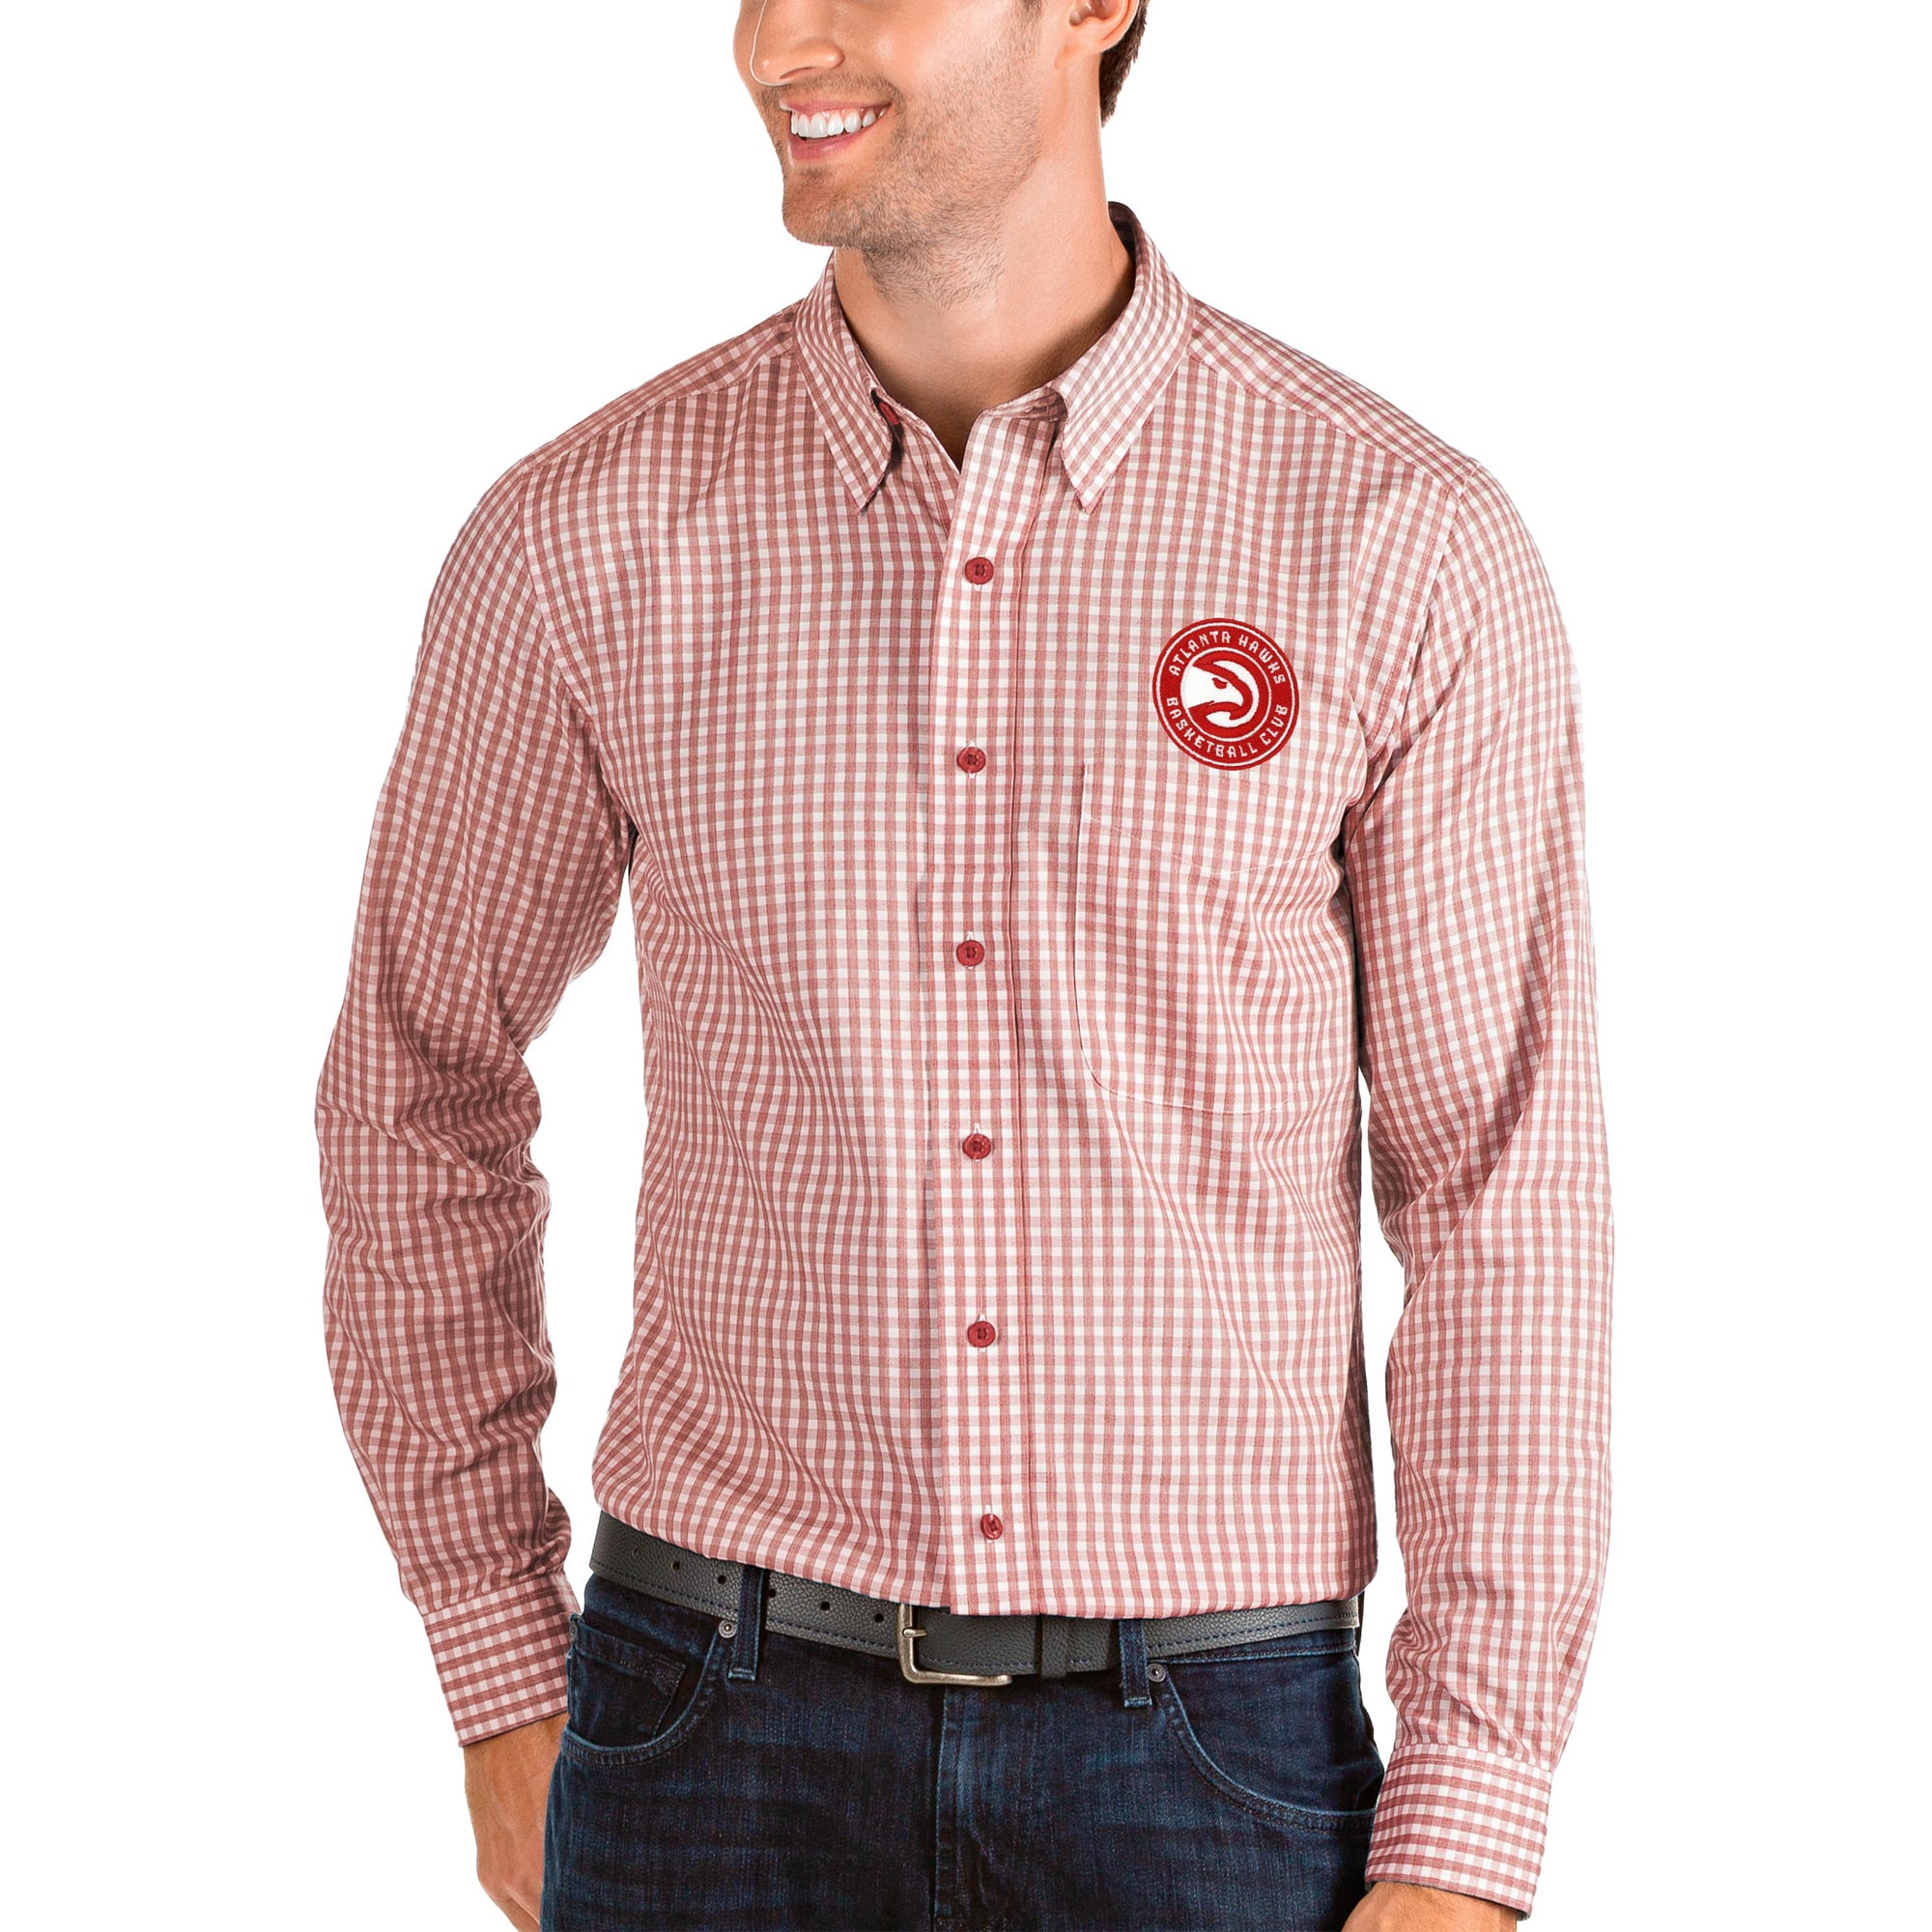 Atlanta Hawks Antigua Structure Long Sleeve Button-Up Shirt - Red/White